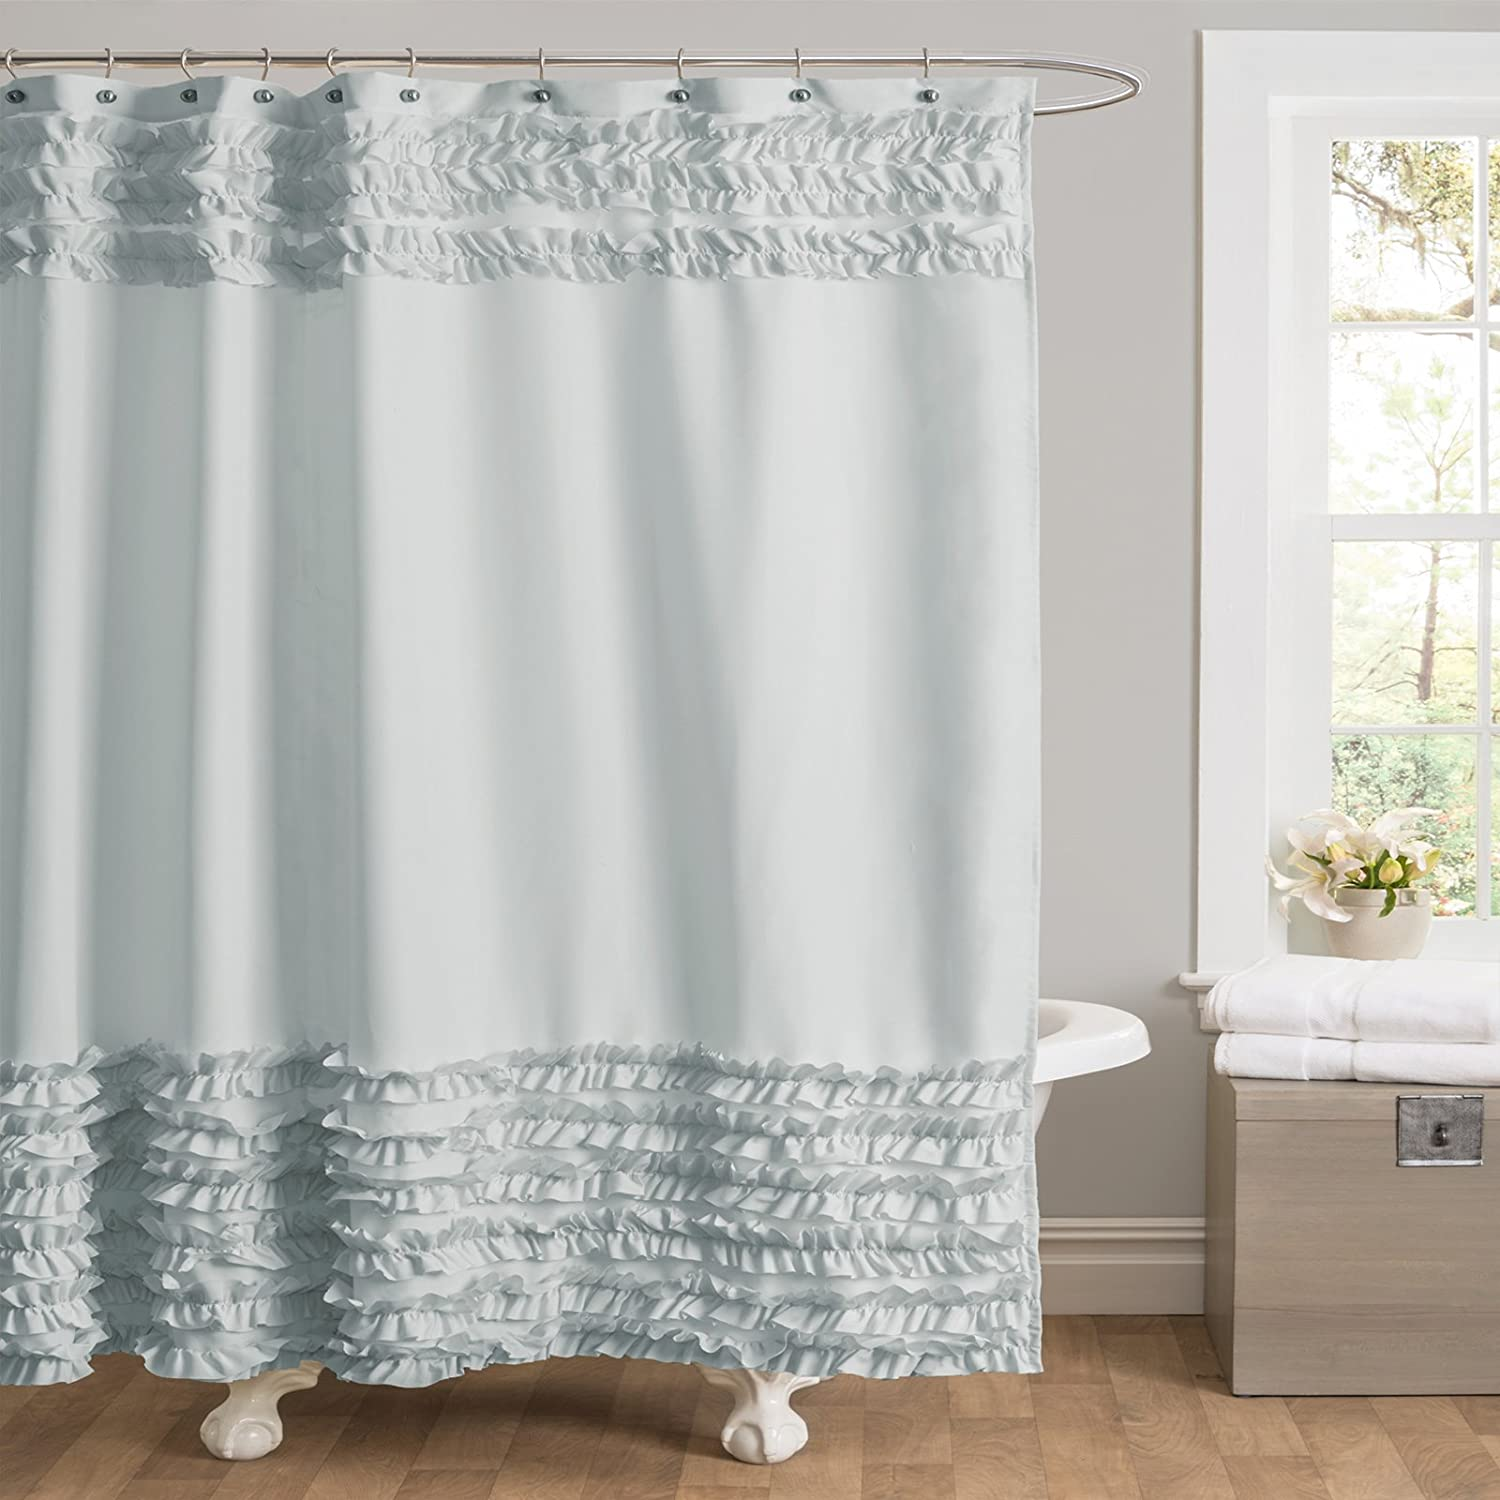 Amazon Lush Decor Skye Shower Curtain 72 by 72 Inch Turquoise